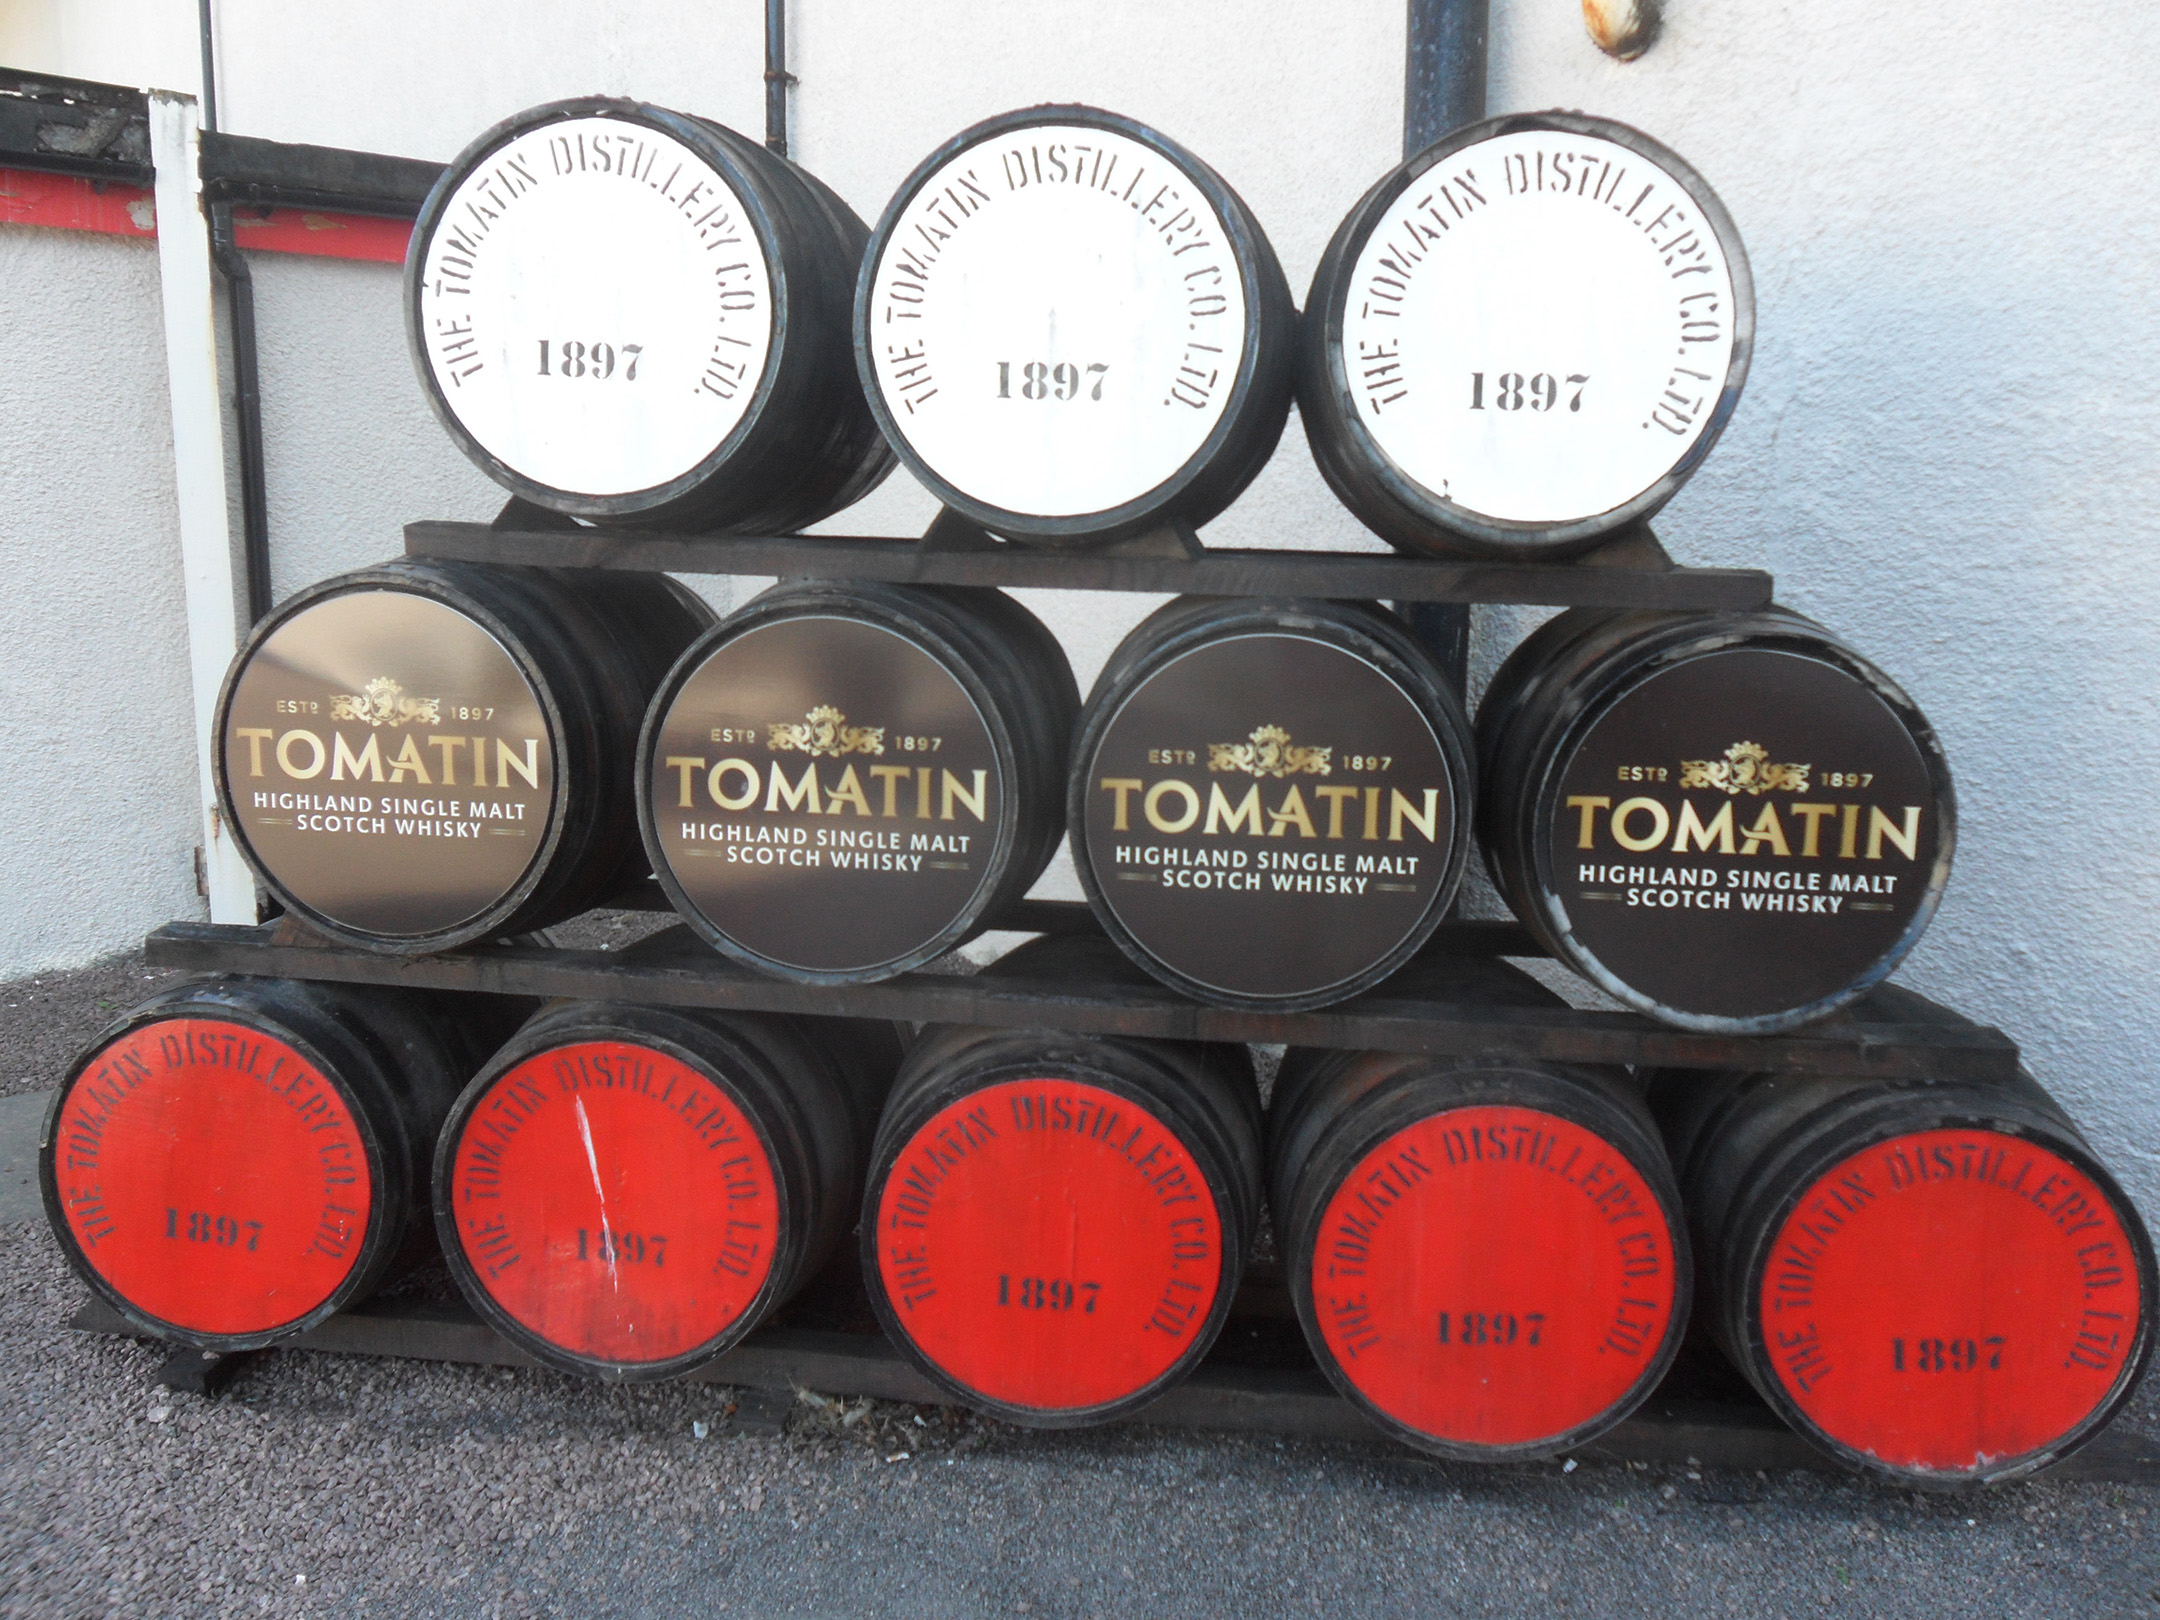 29  in Tomatin Distilly.JPG